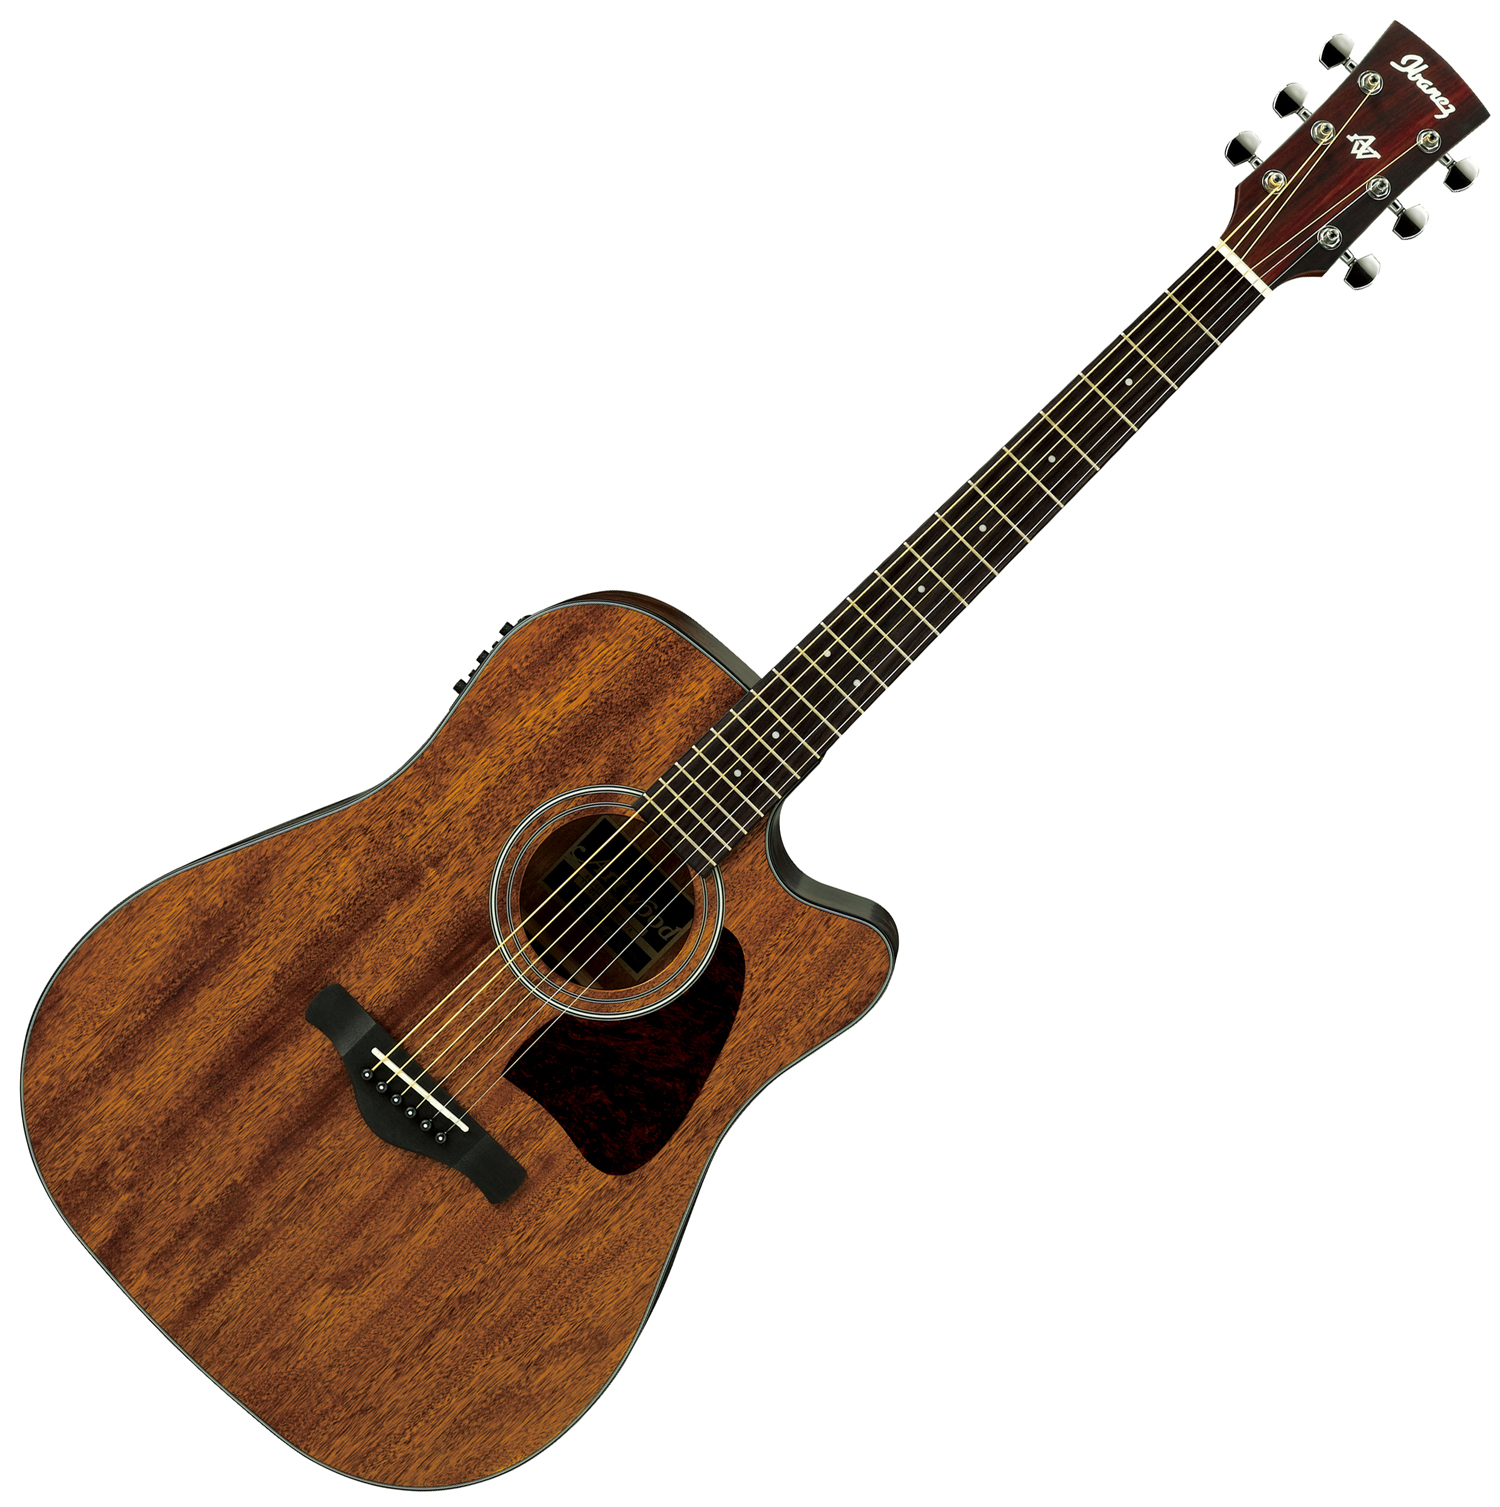 musicworks guitars acoustic electric guitars acoustic electric guitar ibanez artwood. Black Bedroom Furniture Sets. Home Design Ideas